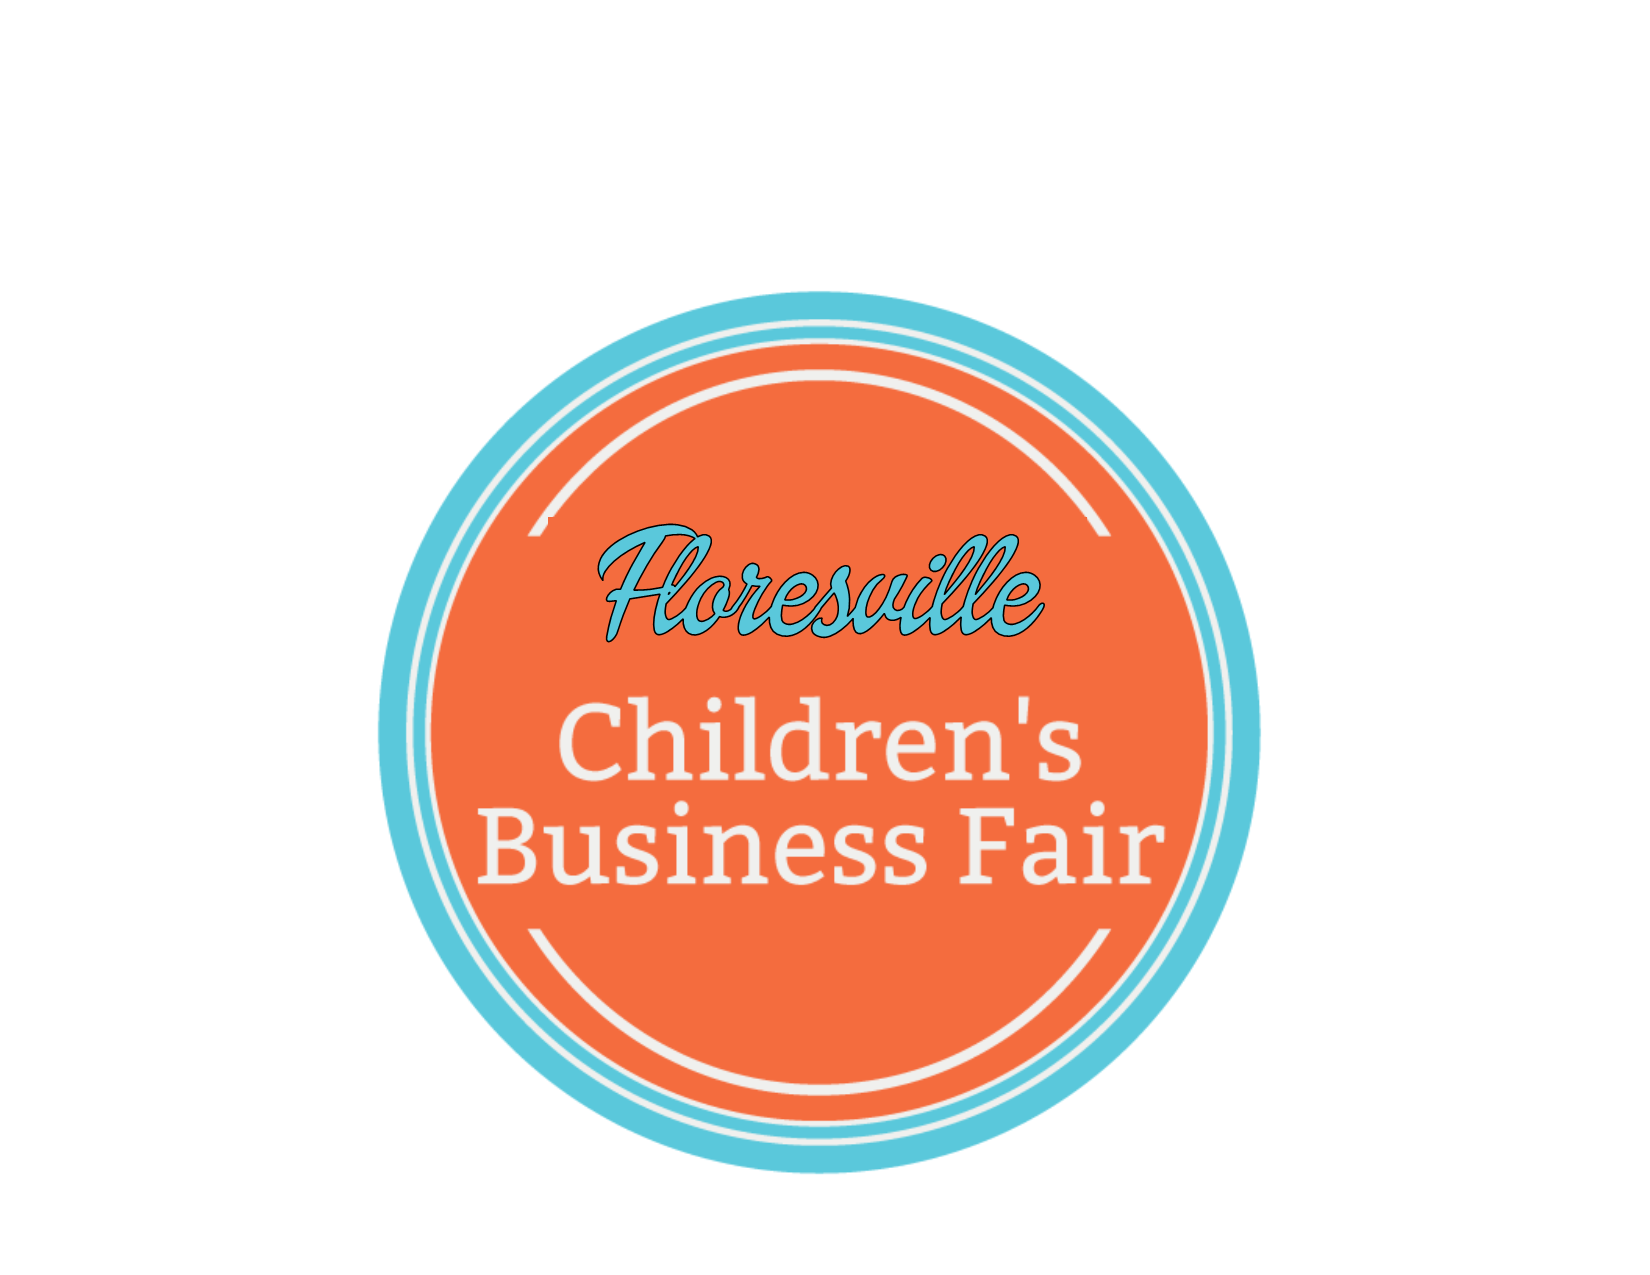 Original floresville children's business fair